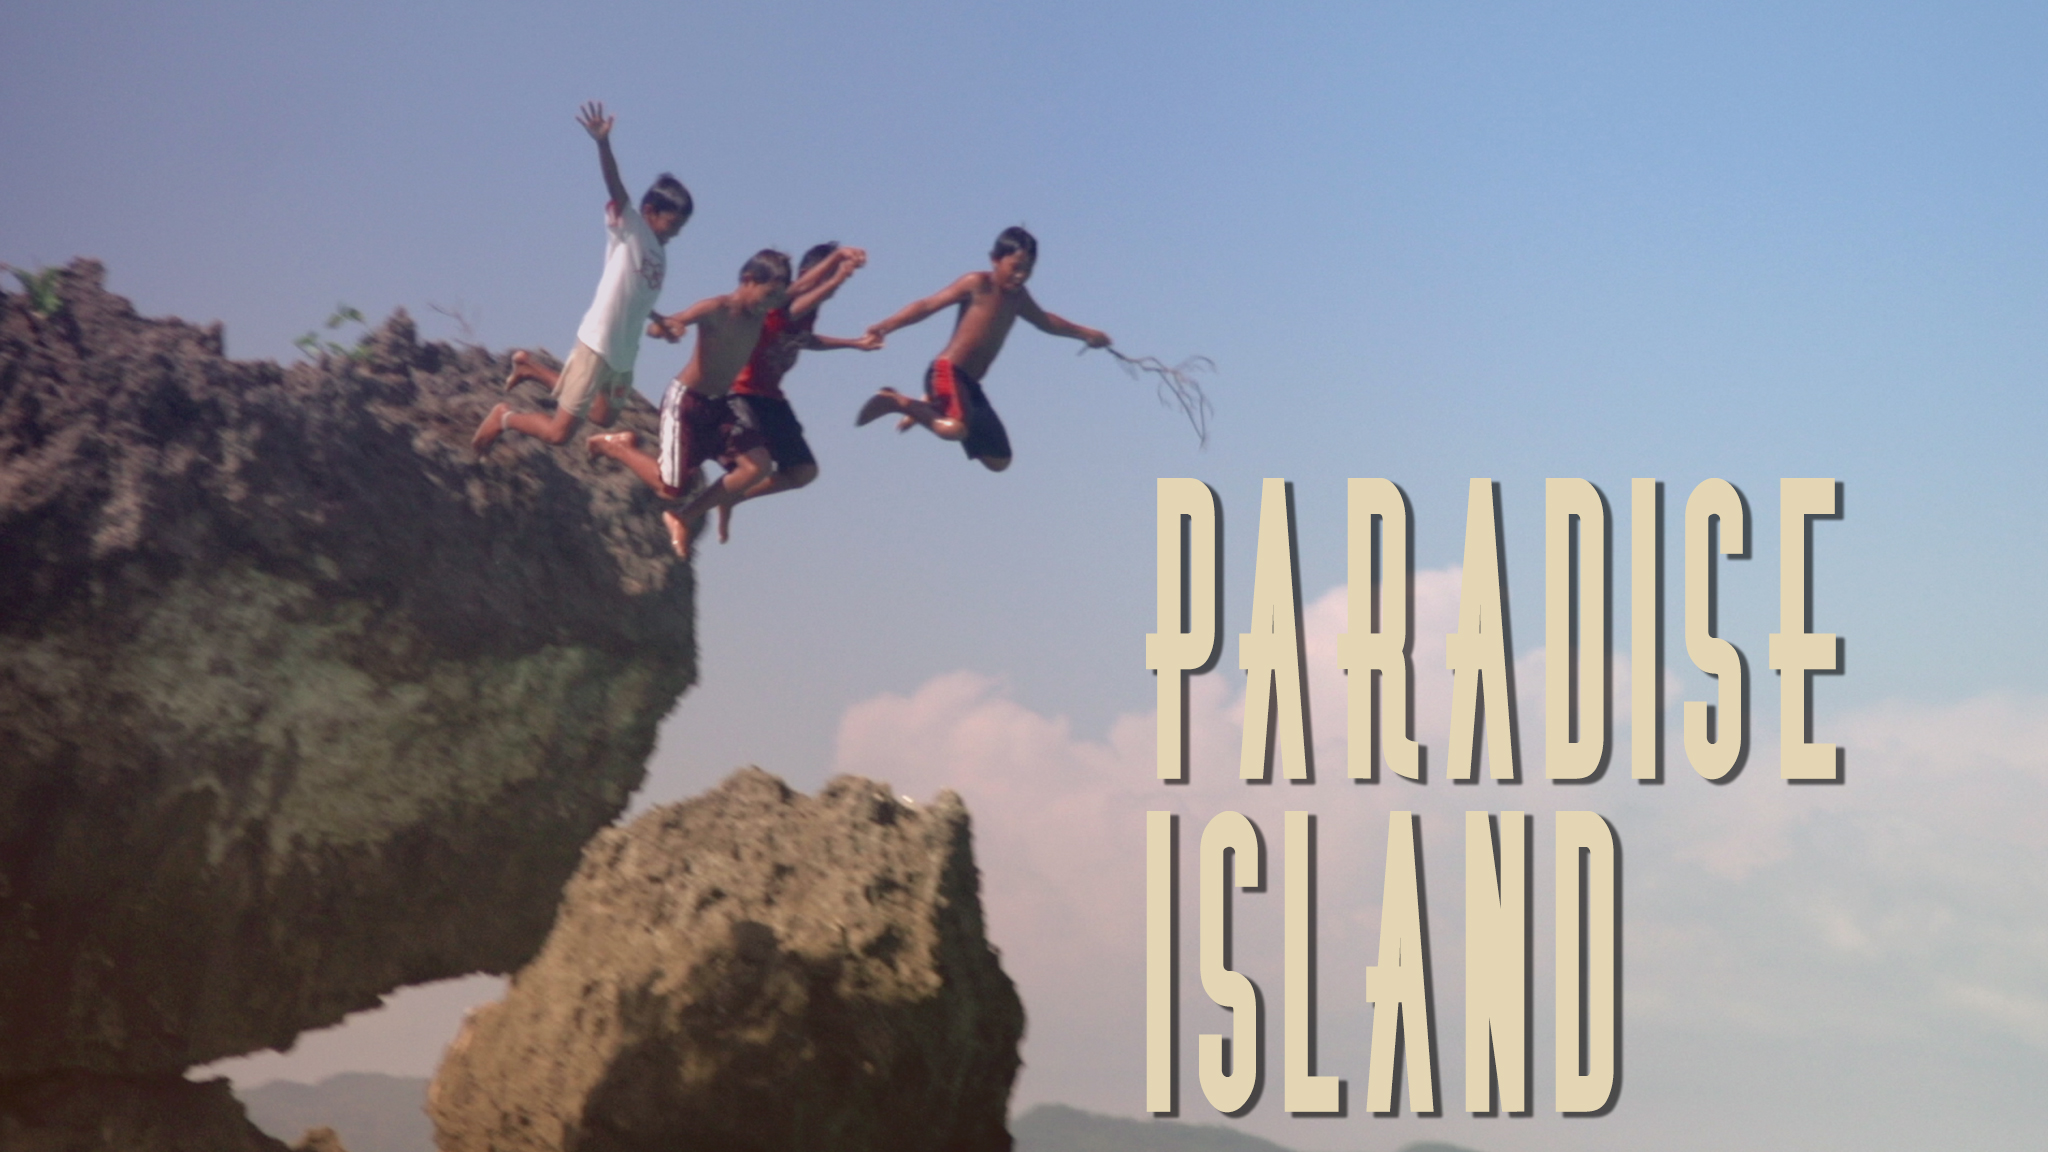 Photo of kids jumping off cliff into water acts as a link to the Paradise Island film page